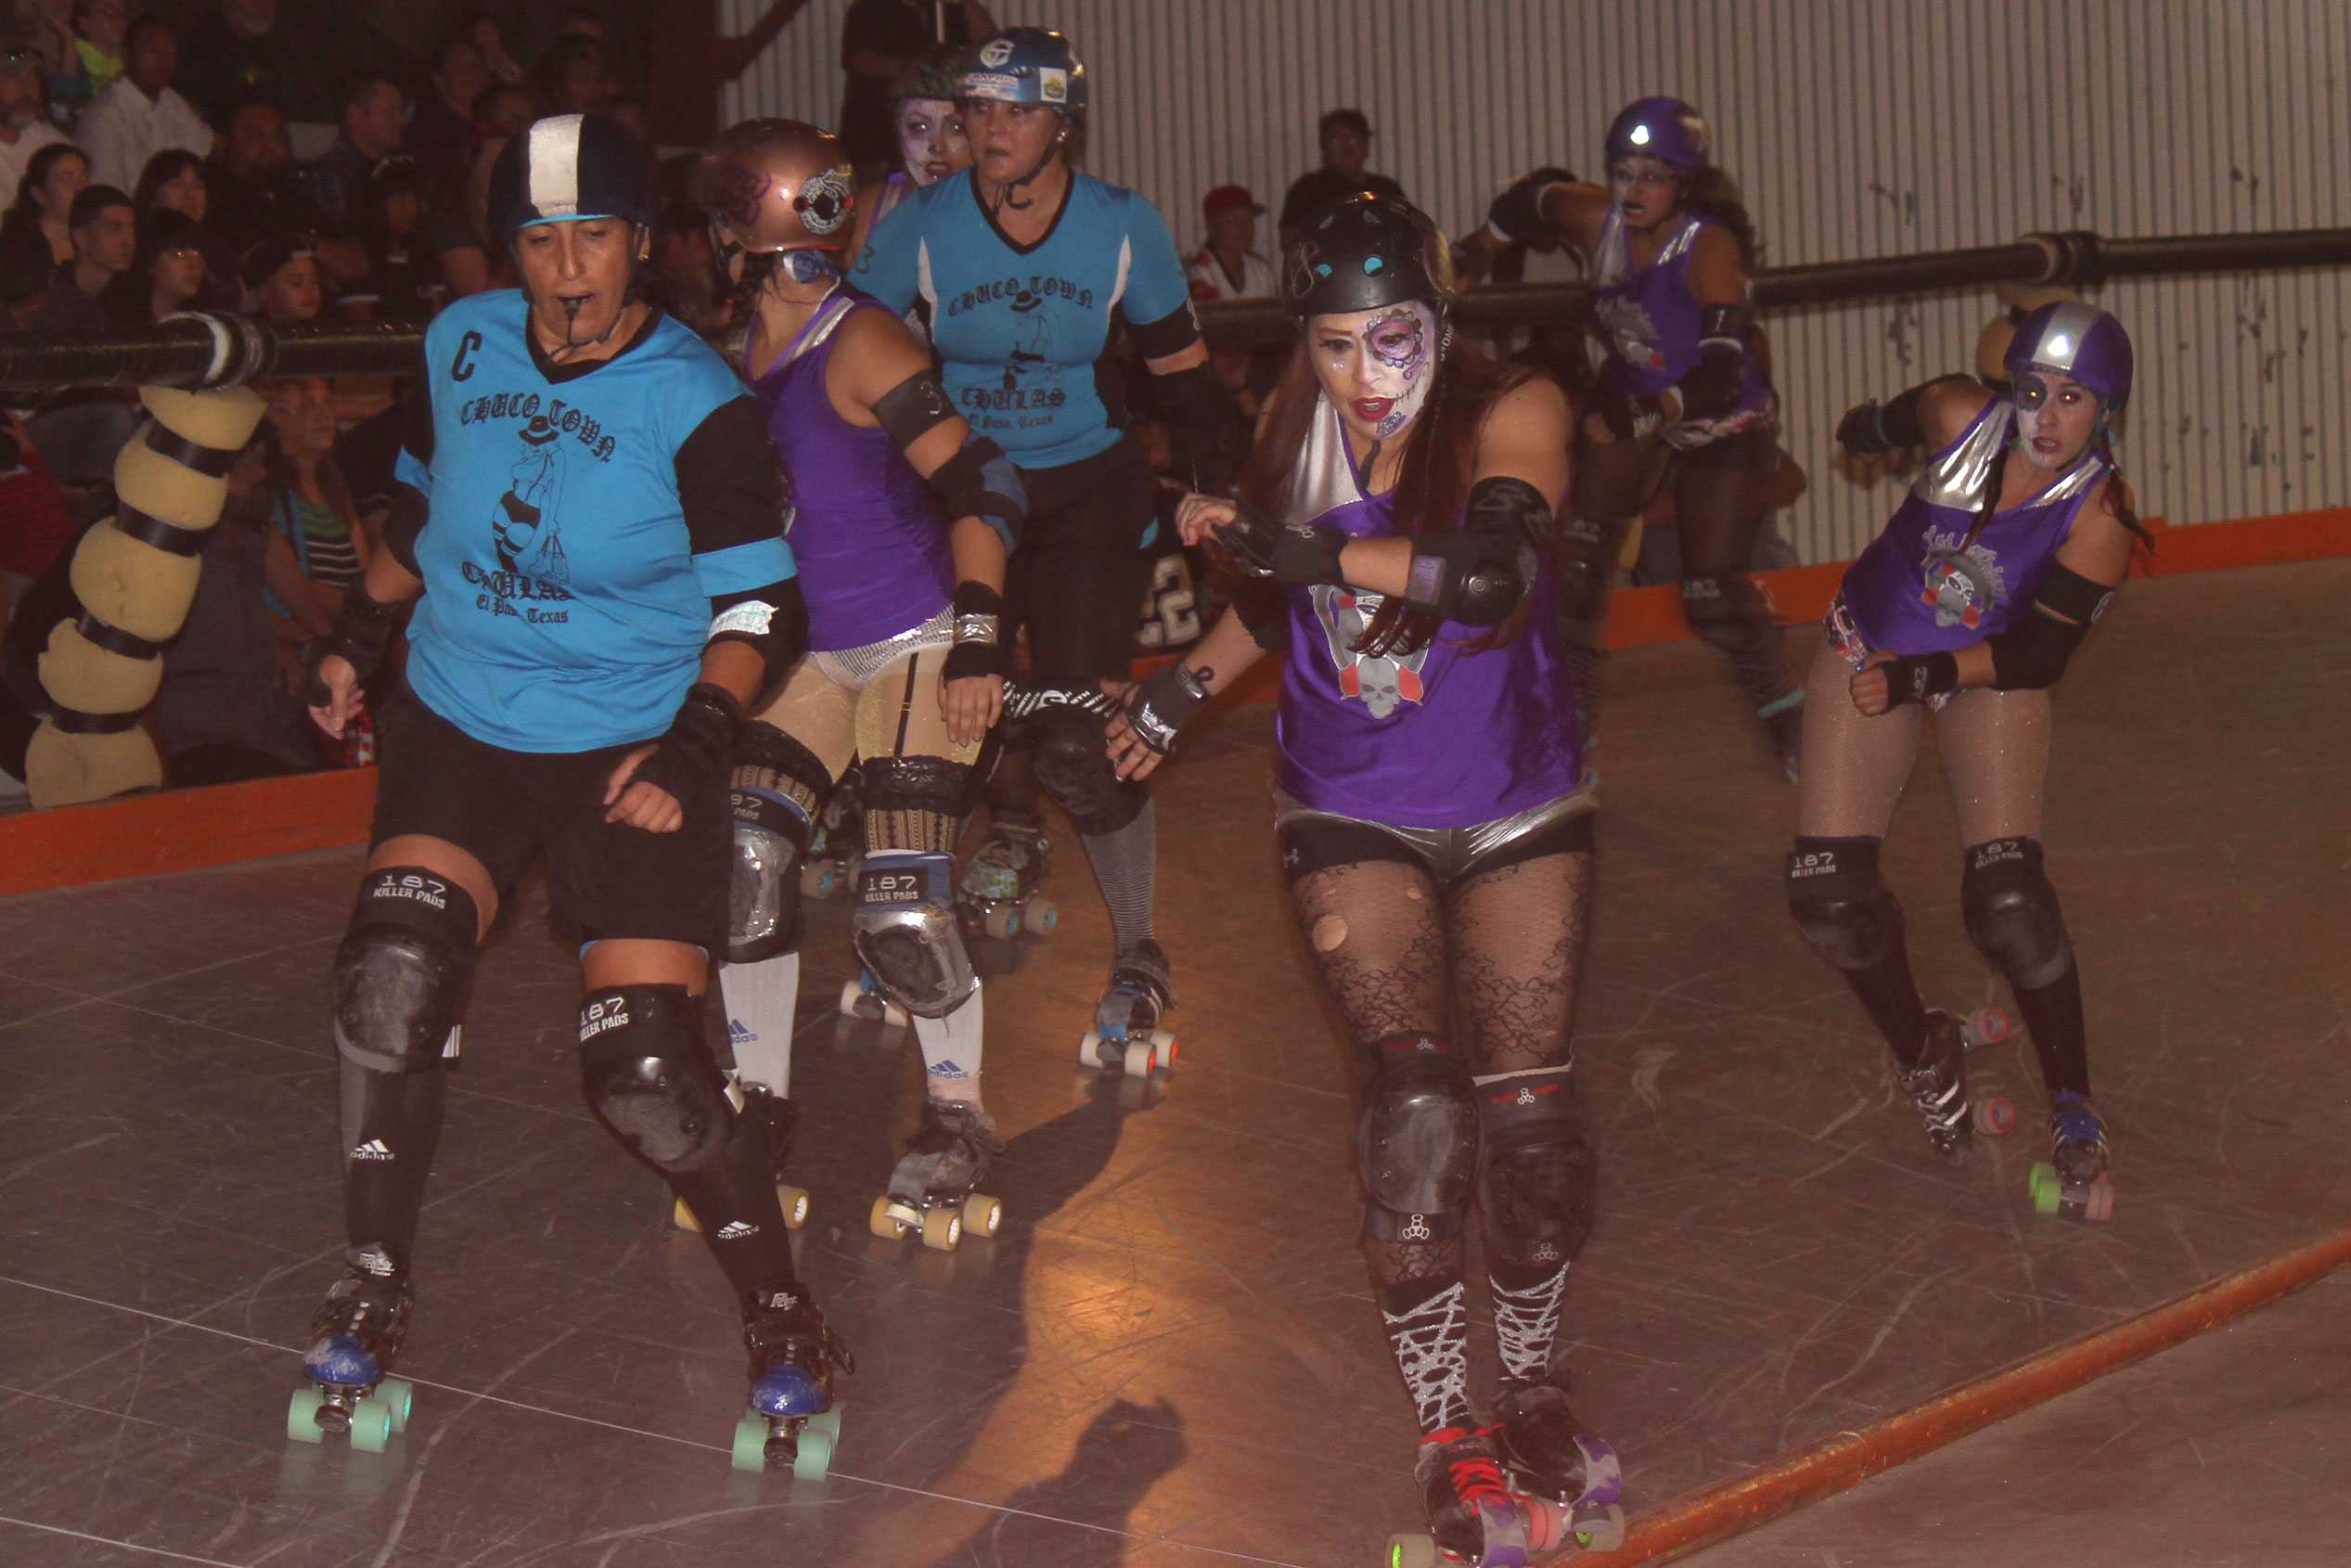 The El Paso Roller Derby title crowned a new champion as Las Catrinas won the championship on Sunday, Oct. 23.